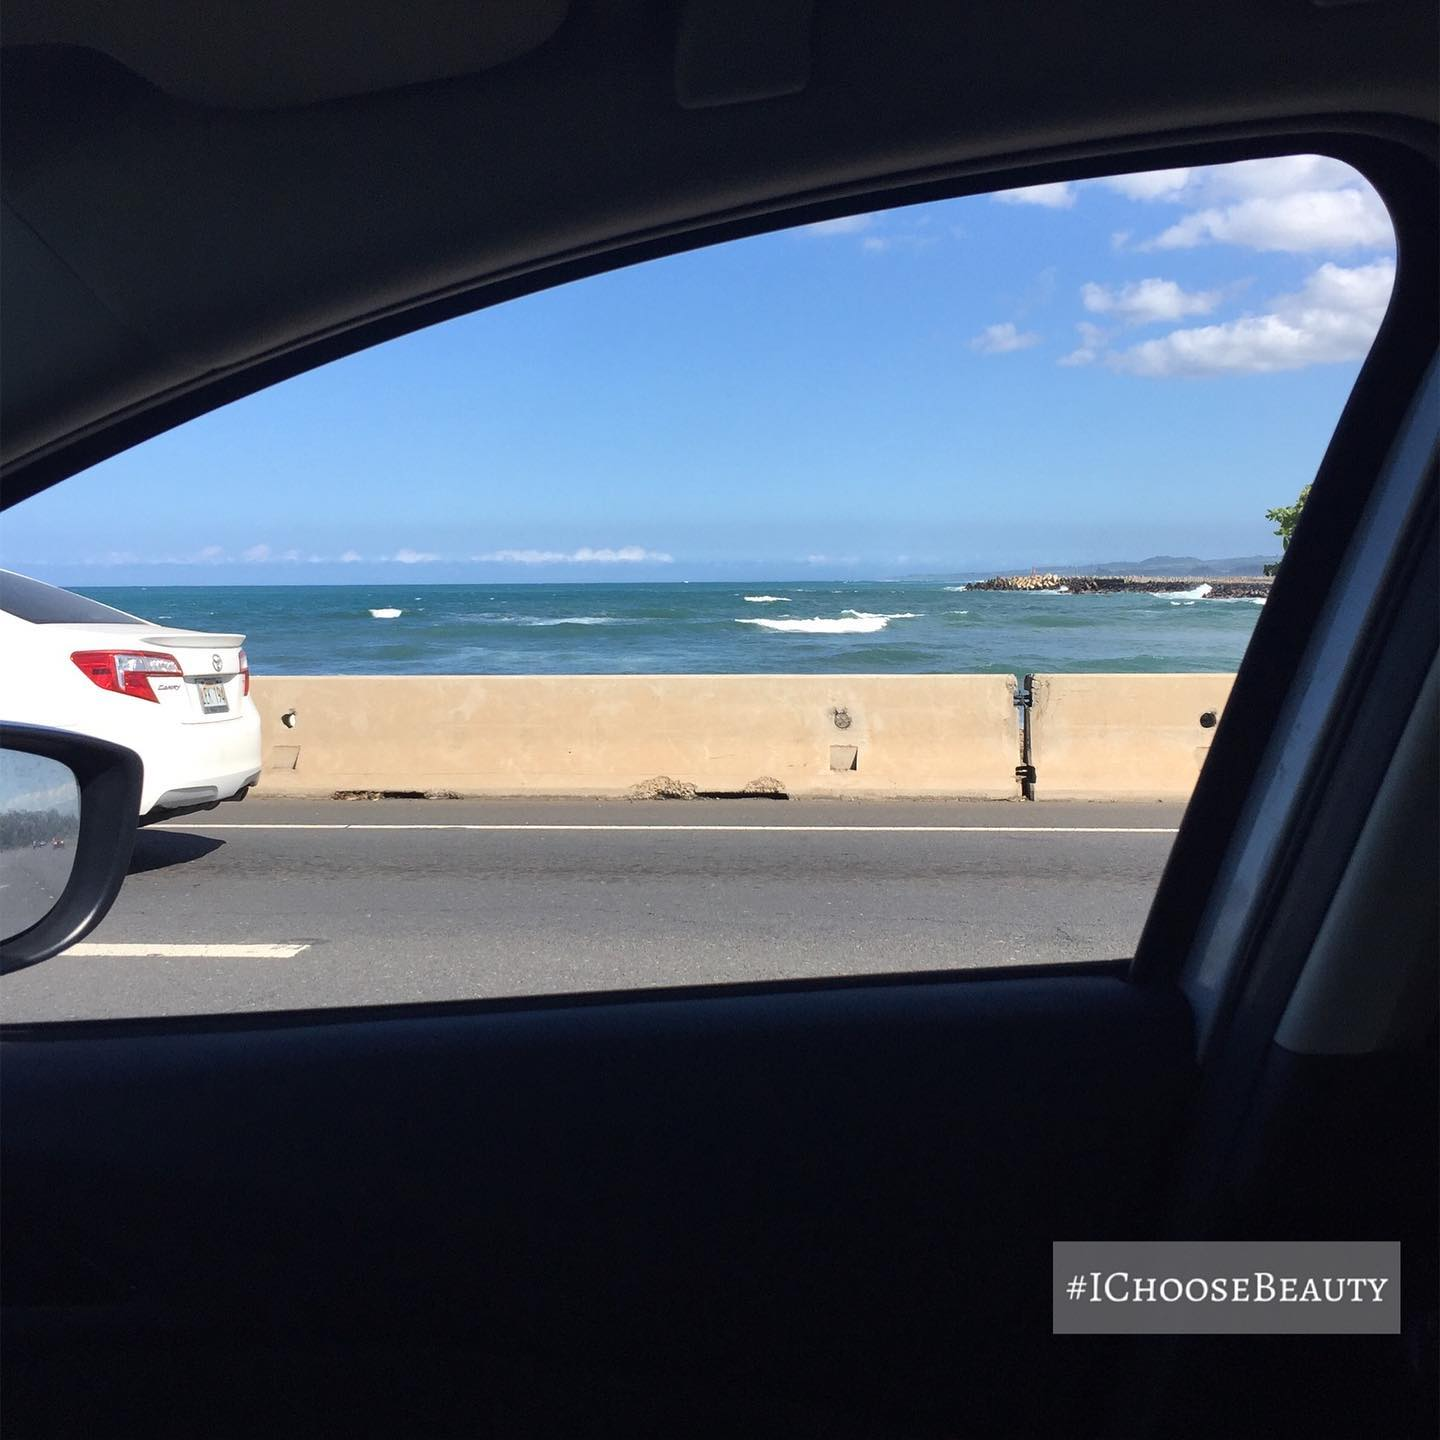 Stoplight view by our condo. I always roll down the windows so I can smell the ocean and hear the waves crashing.  #ichoosebeauty Day 2610